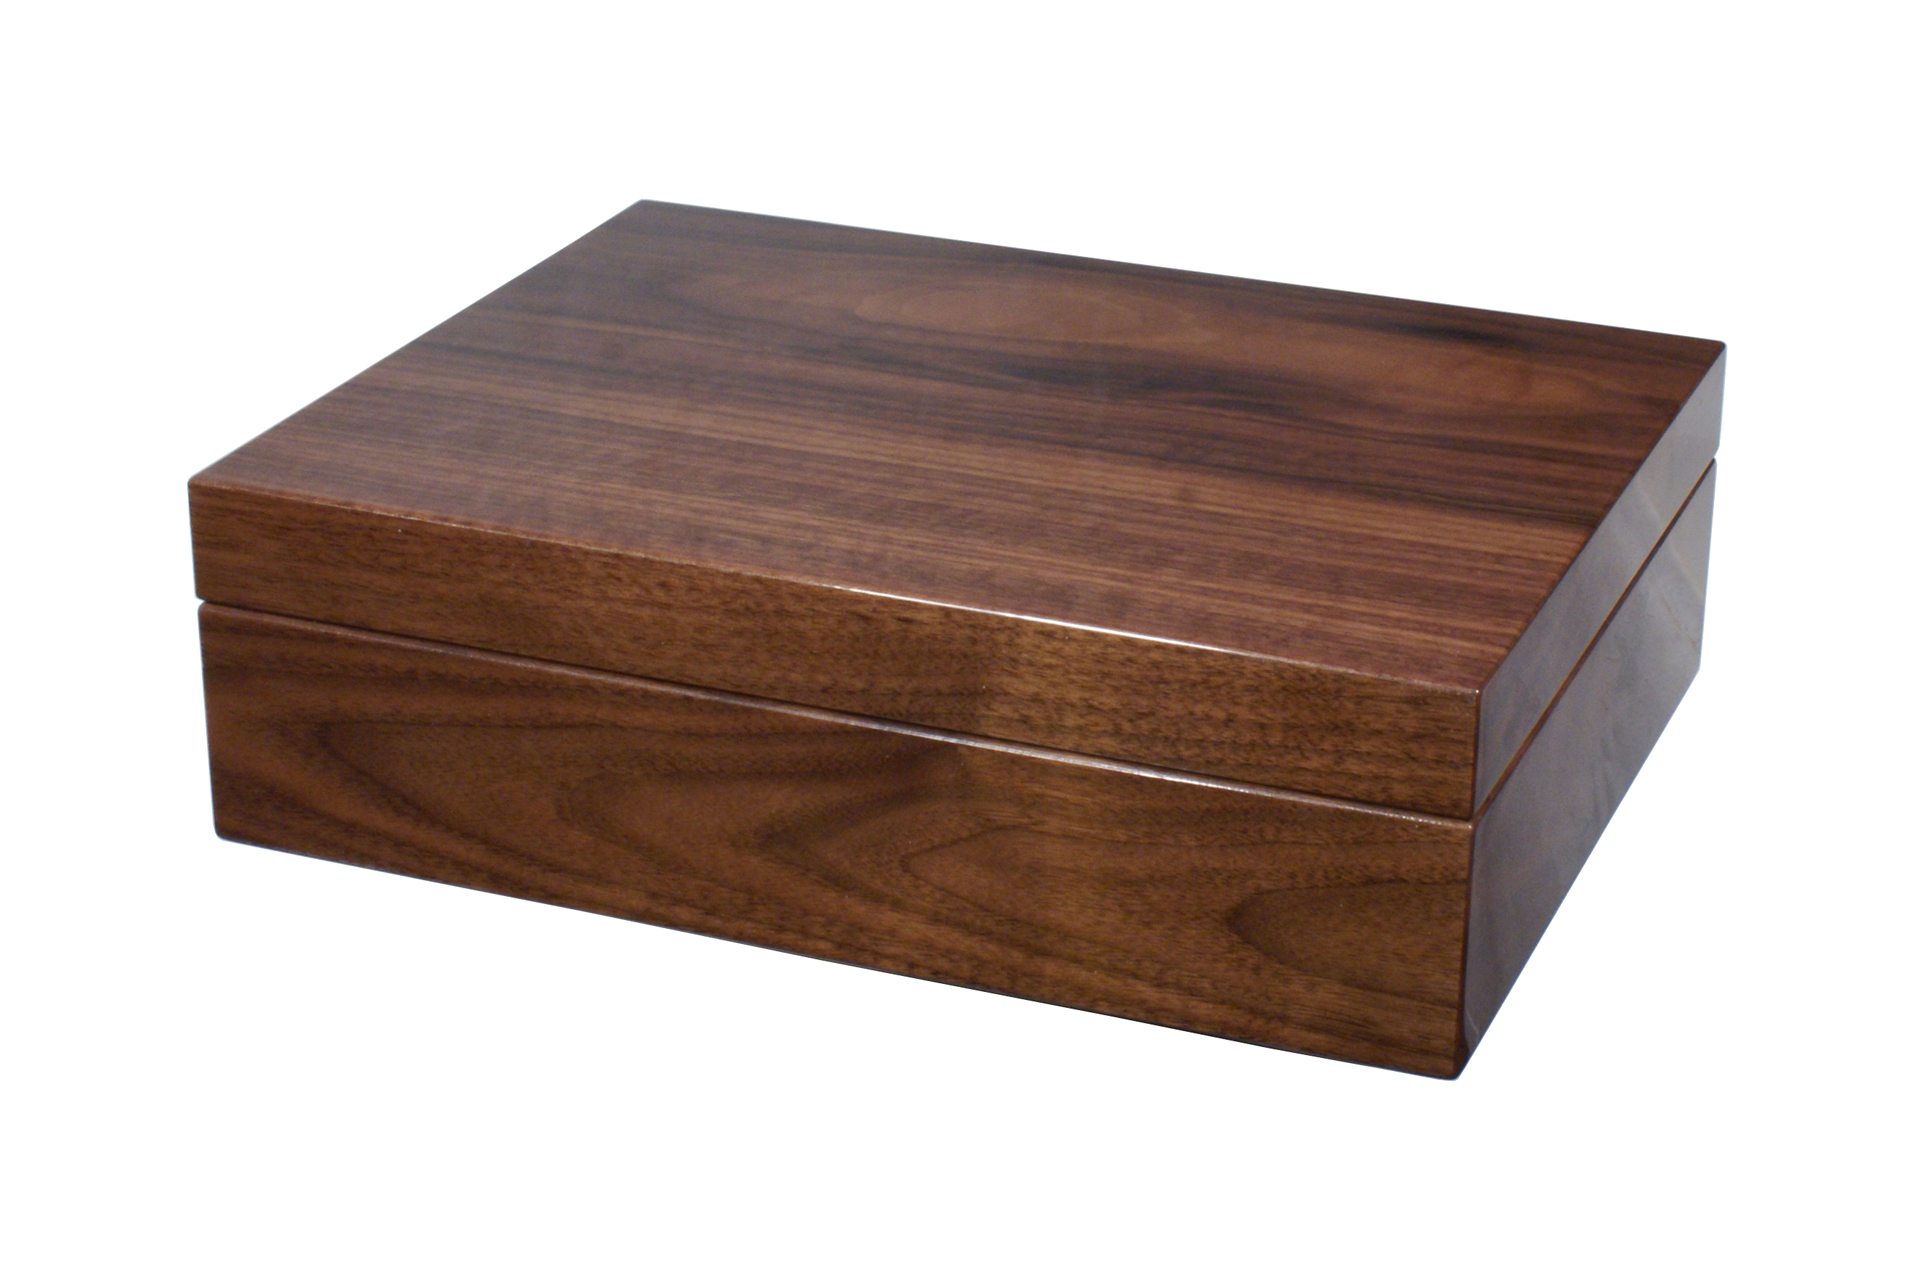 luxury wooden teabox bespoke hotel room products for hotels leisure industry